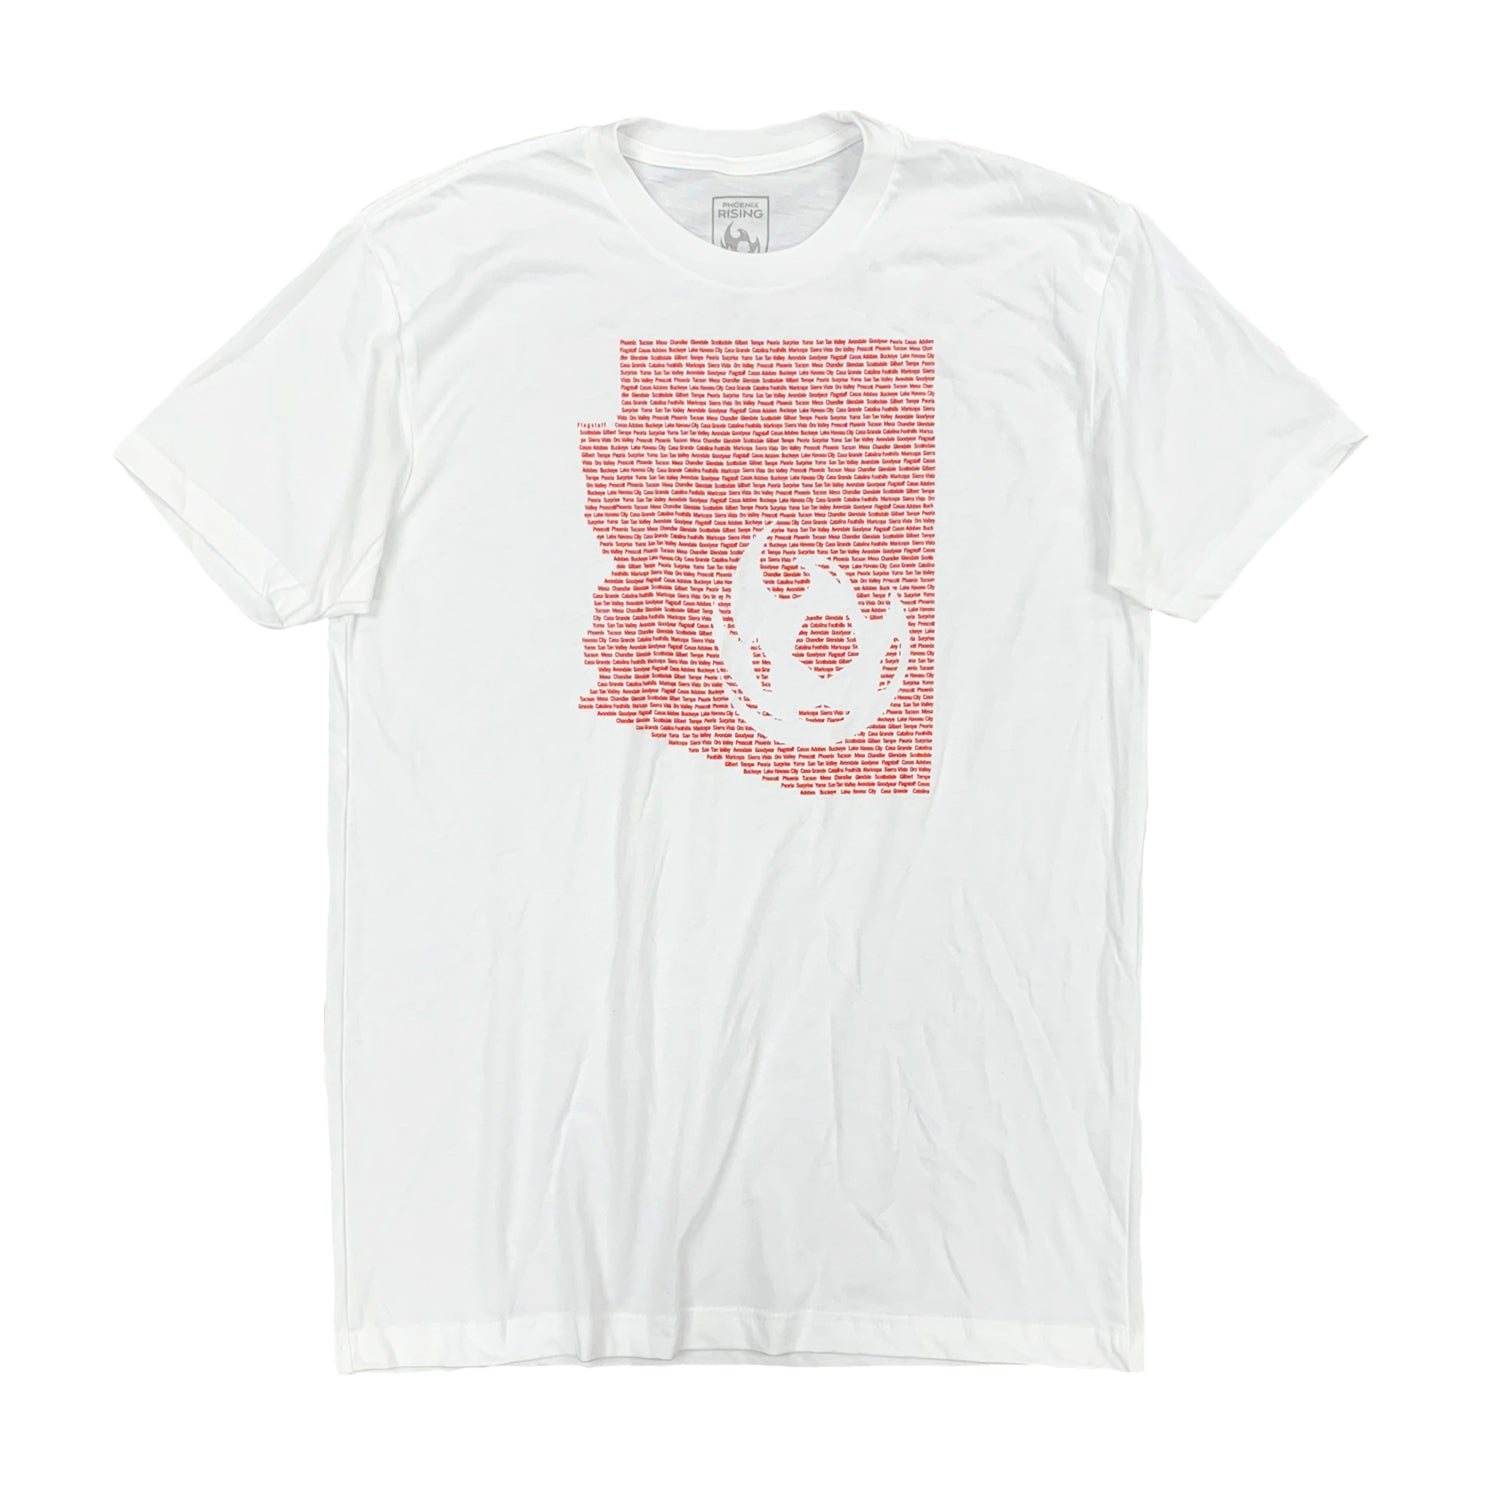 Phoenix Rising All In Tee - White